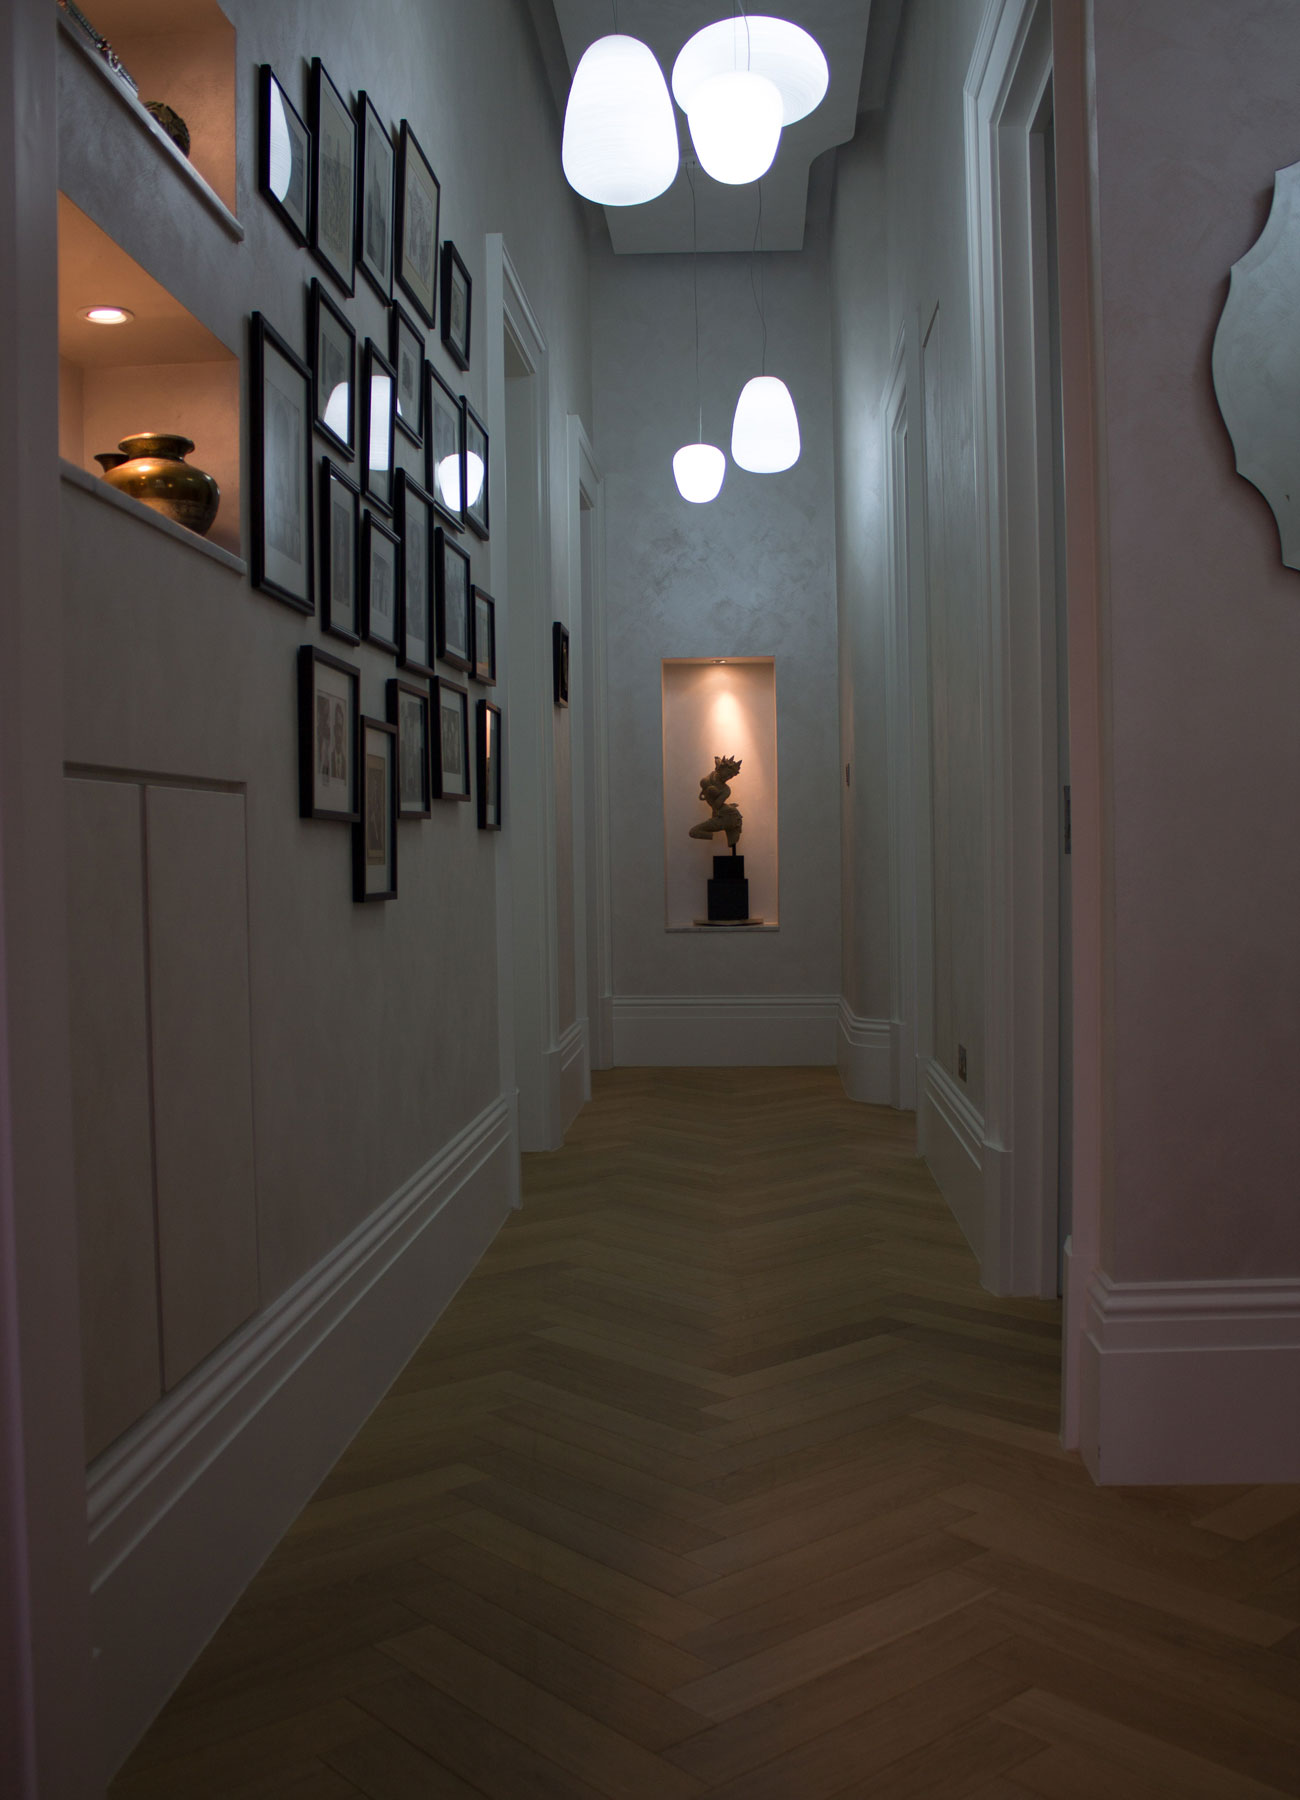 Corridor with modern lighting and sculpture